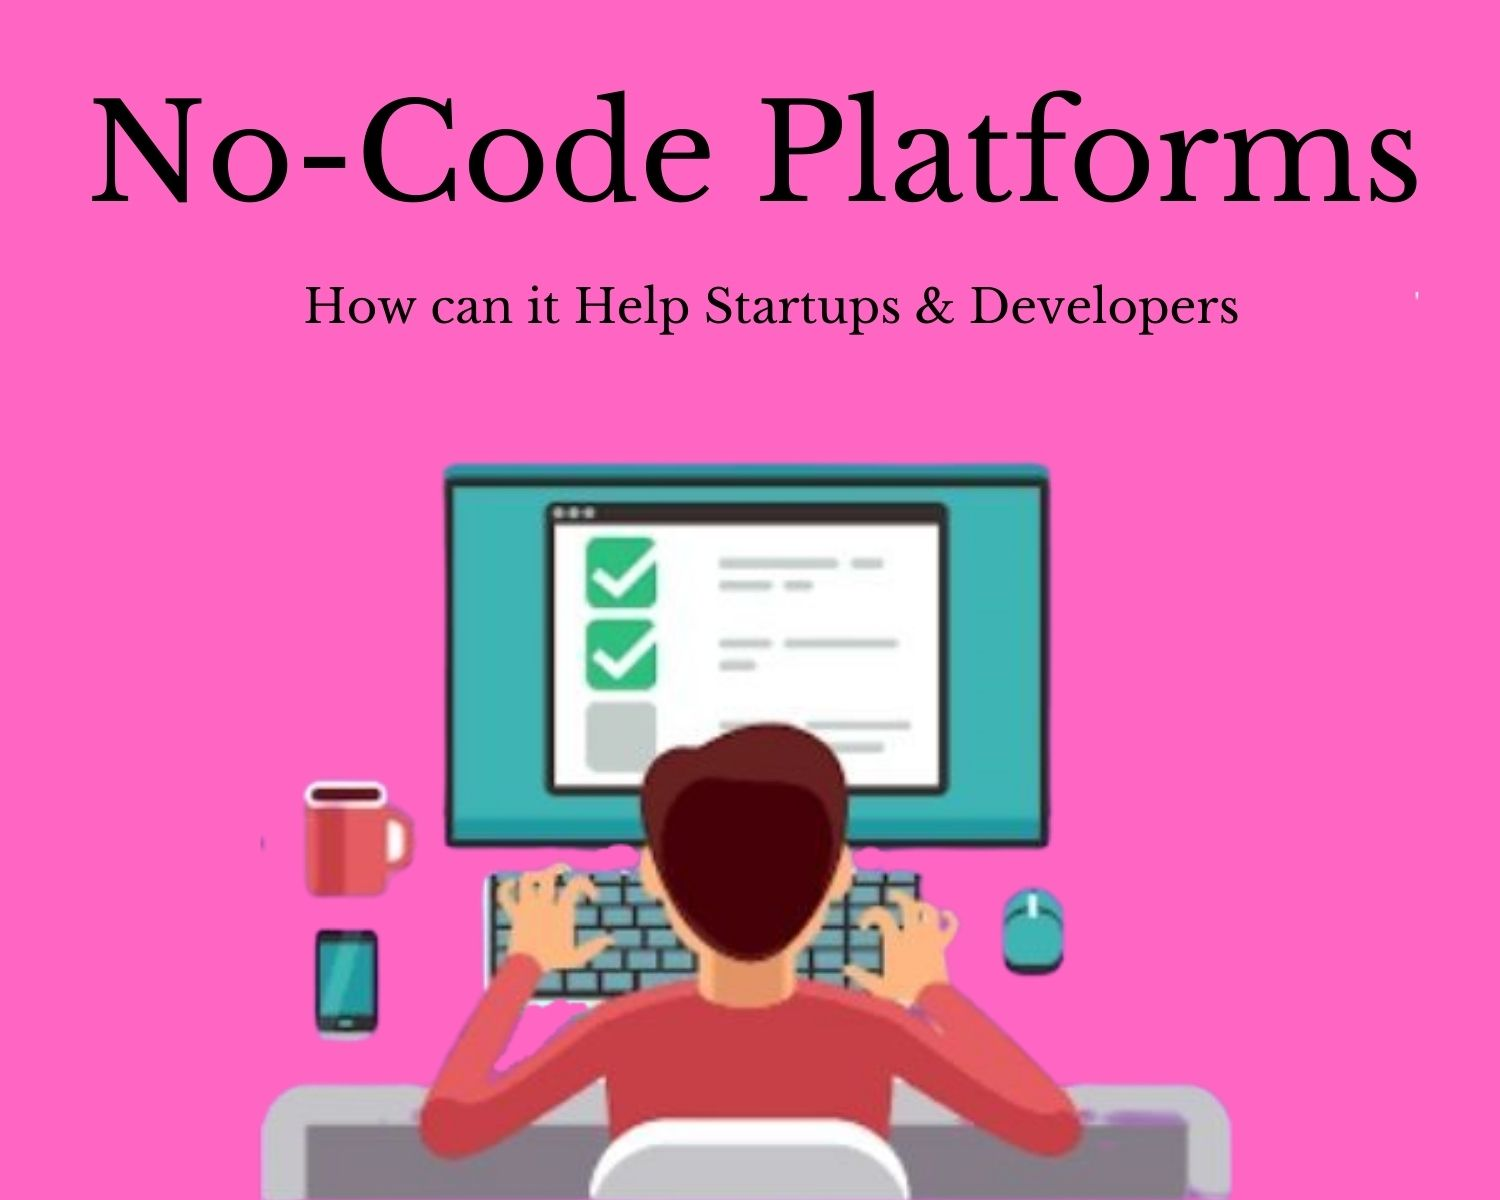 How-can-No-code-Platforms-Help-Startups-Developers